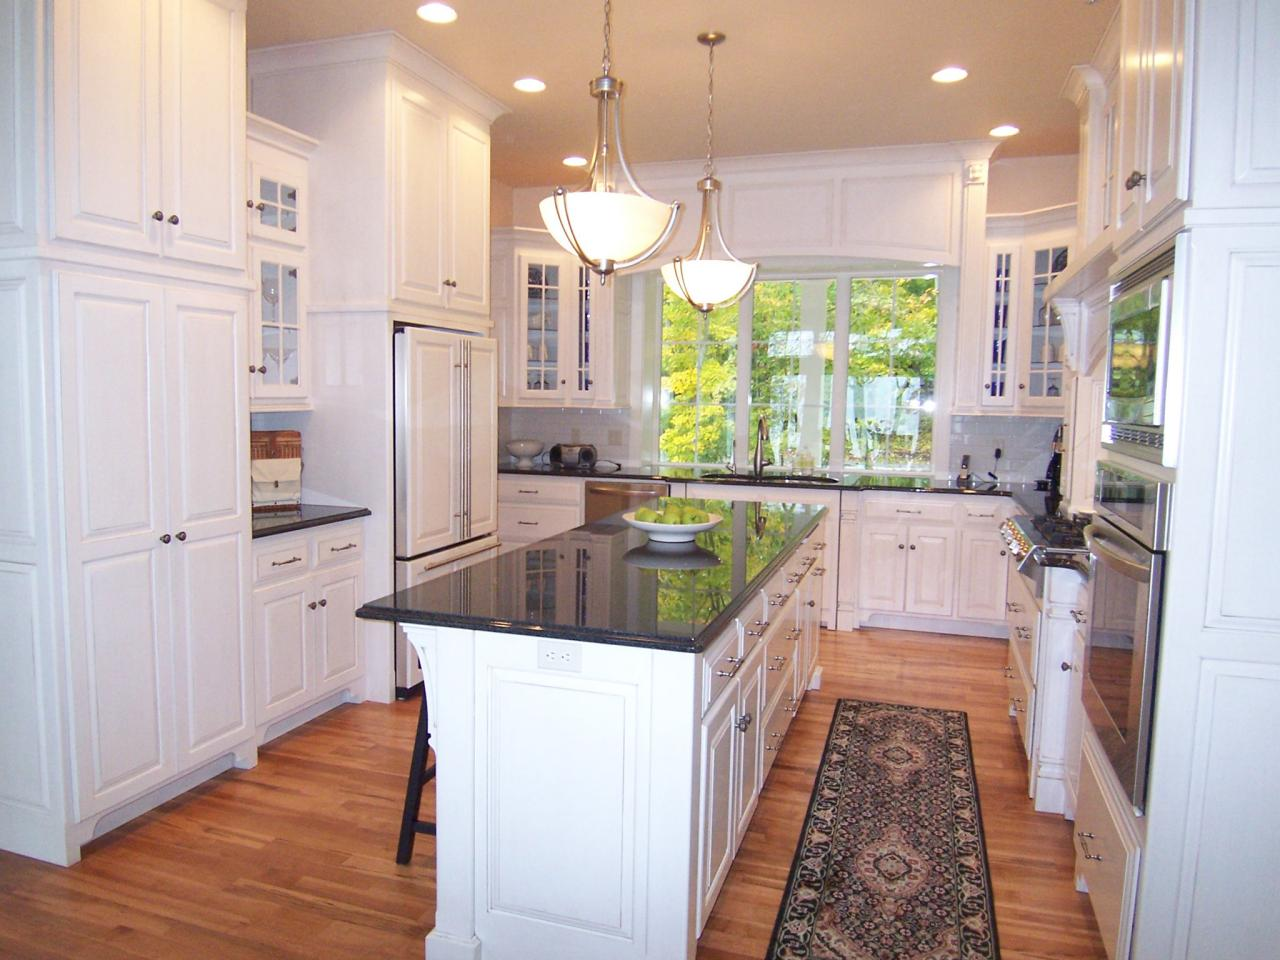 U shaped kitchen design ideas pictures ideas from hgtv U shaped kitchen ideas uk